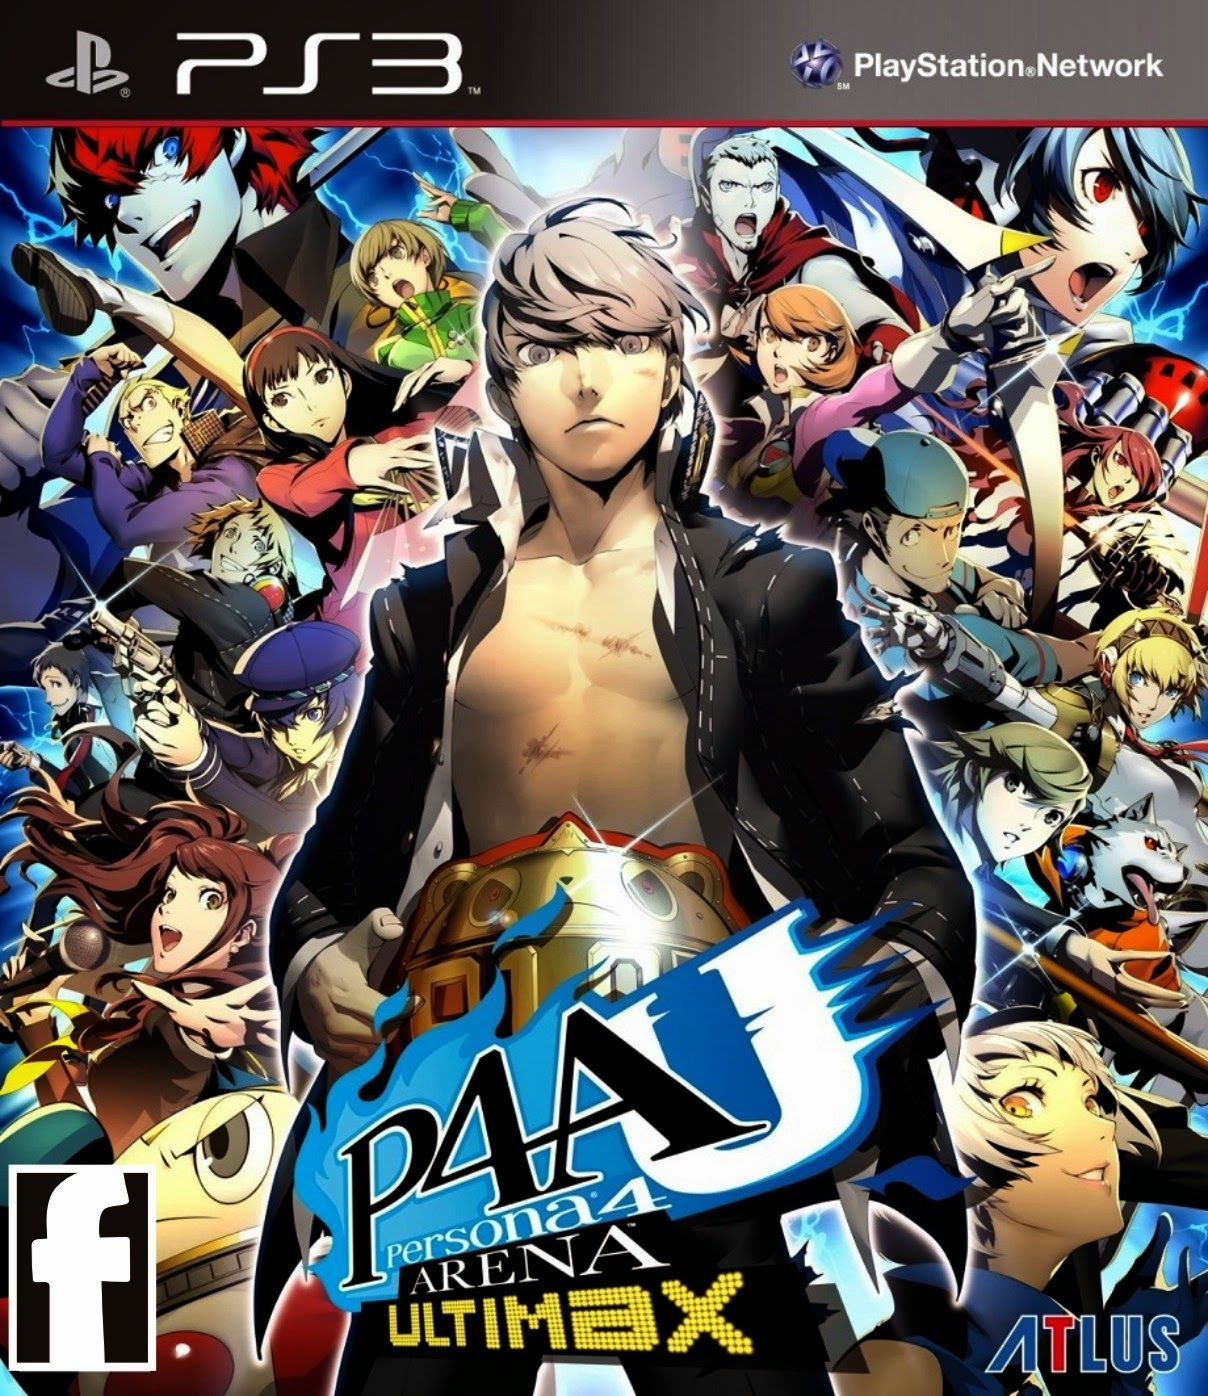 PS3ISO Games | Free Download | TB Games PS3 ISO | Eboot Fix